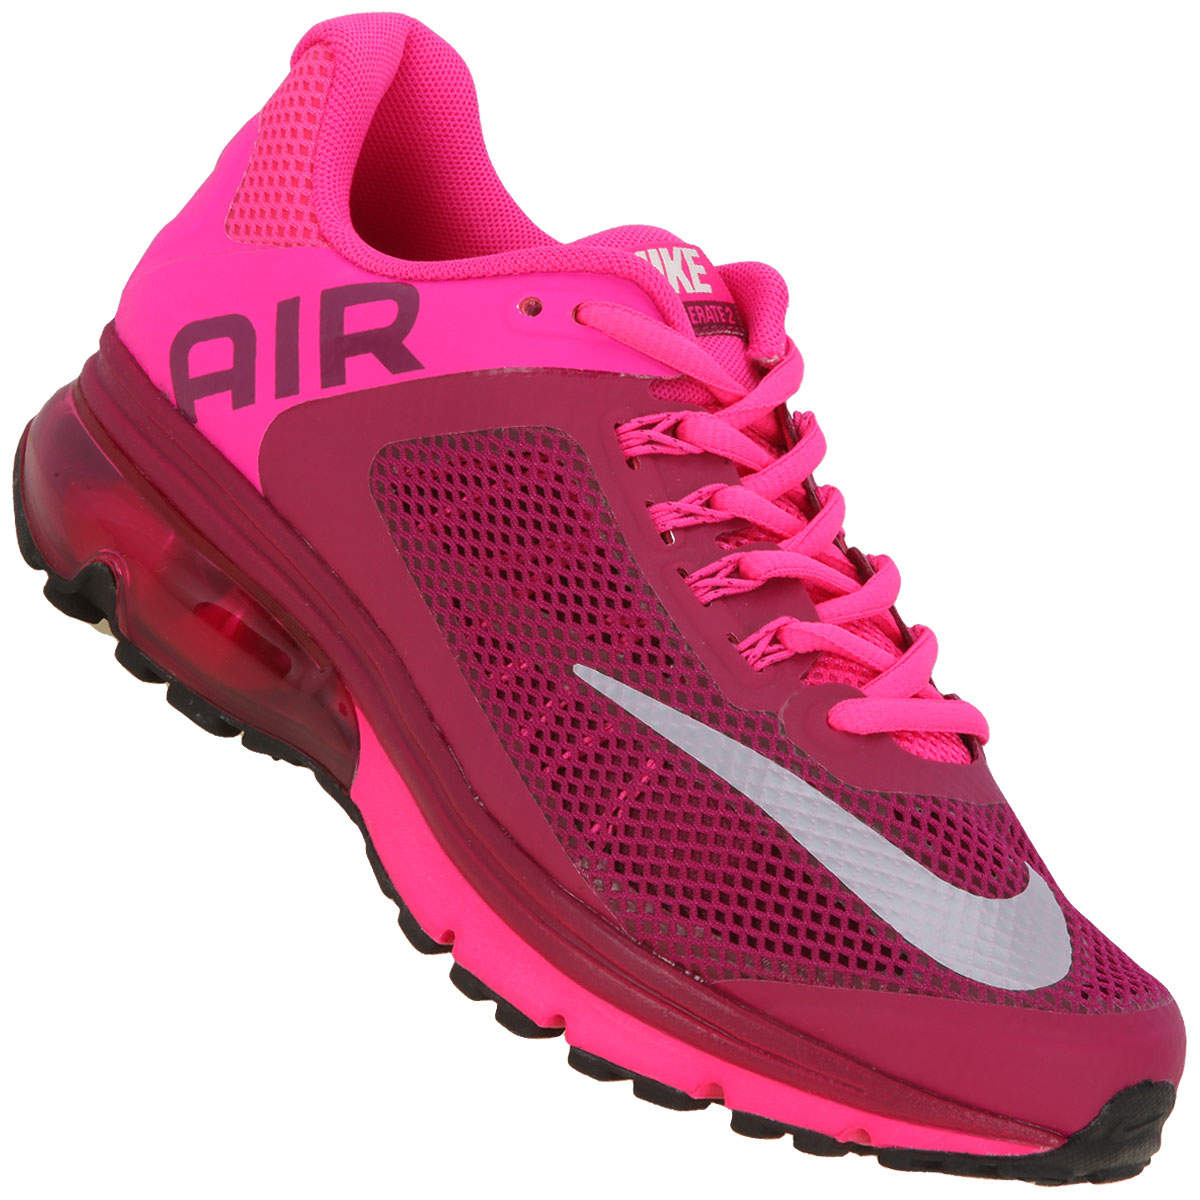 2fb6731c10f Compre Tenis Nike Air Max Excellerate 2 W Netshoes ...